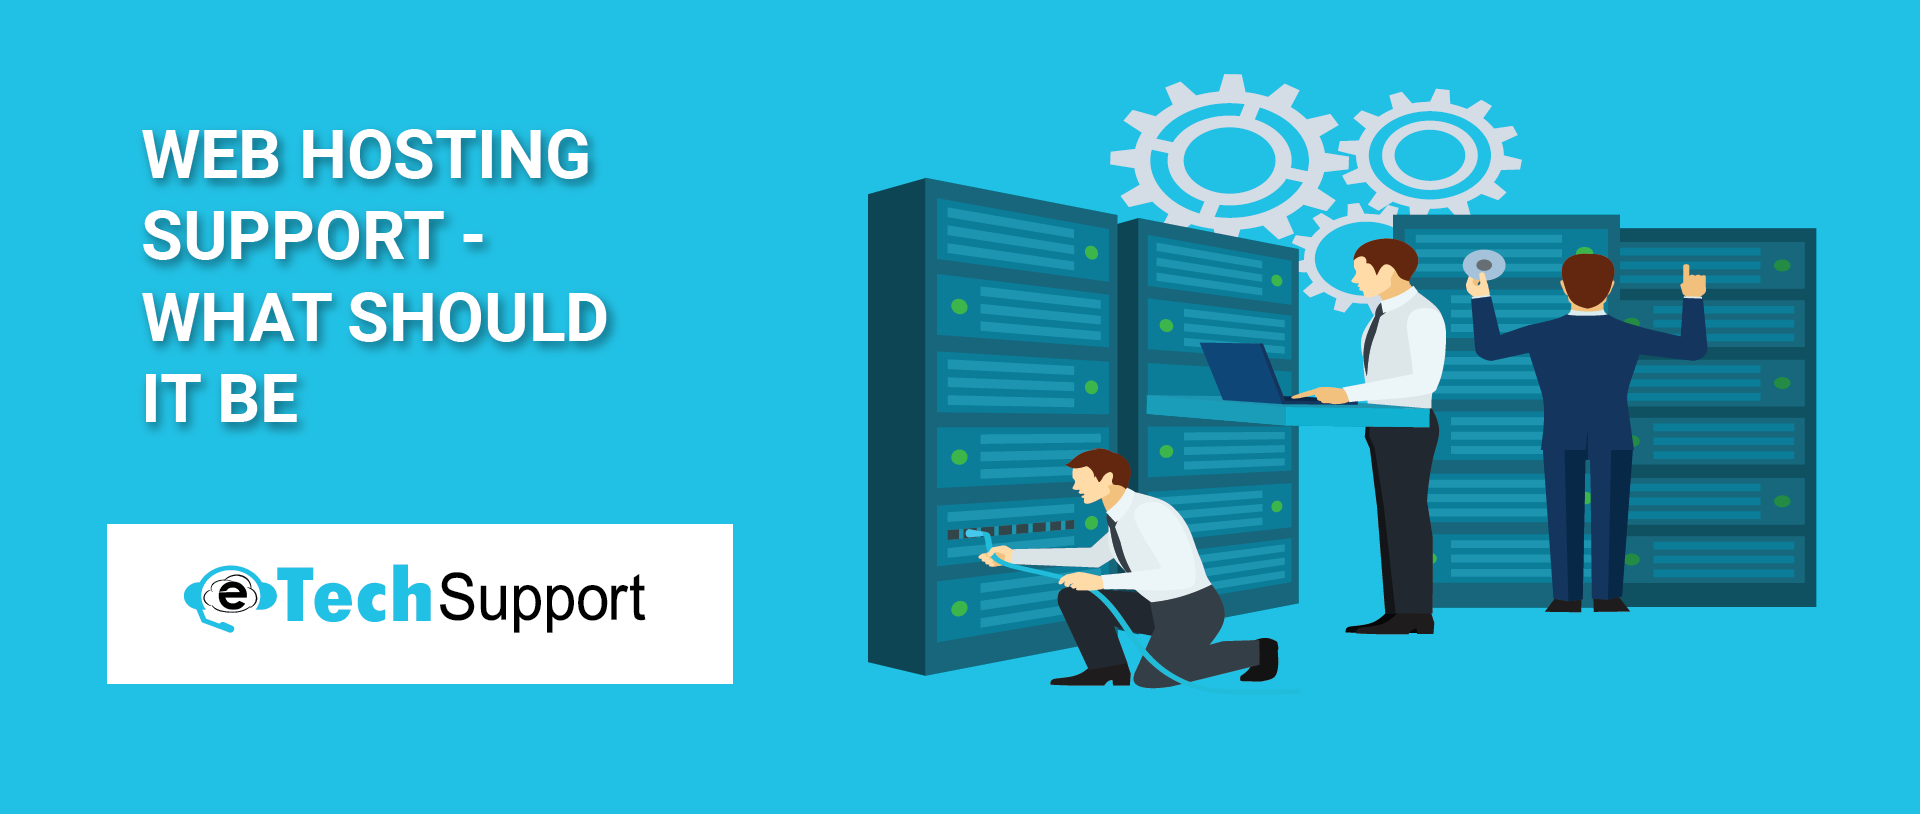 WEB-HOSTING-SUPPORT---WHAT-SHOULD-IT-BE